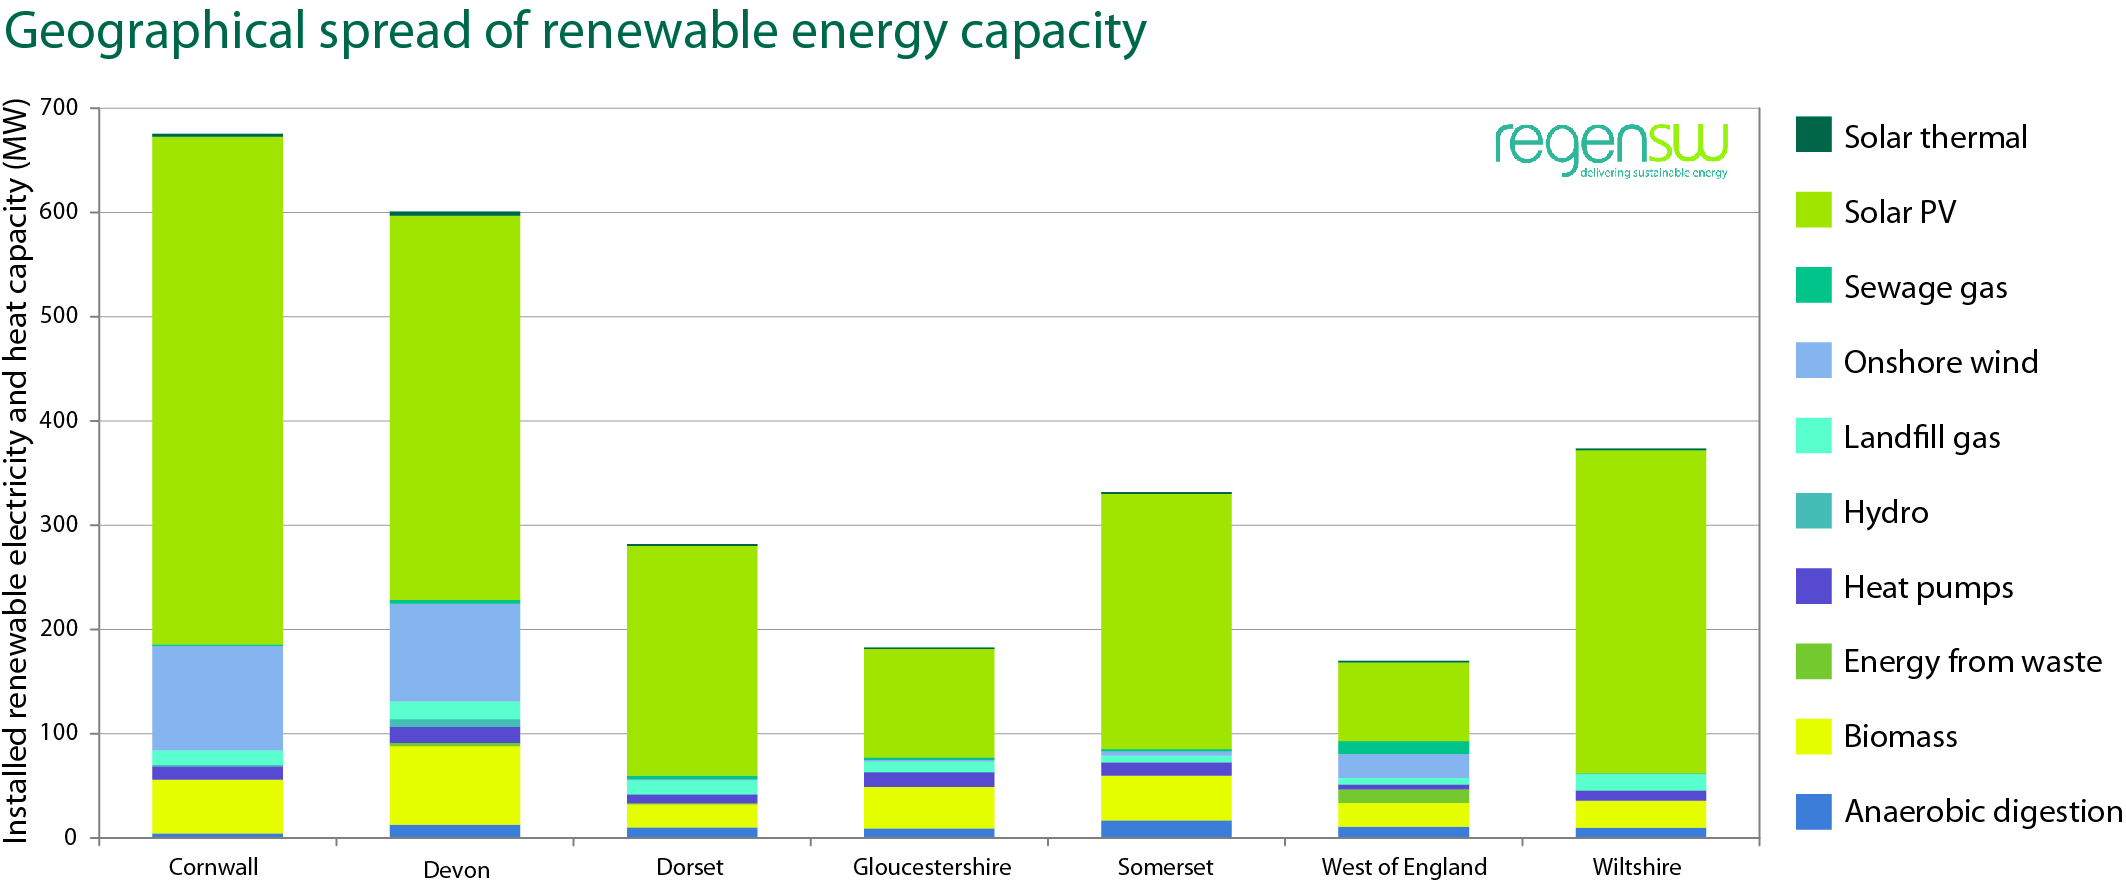 Geographical-spread-of-renewable-energy-capacity